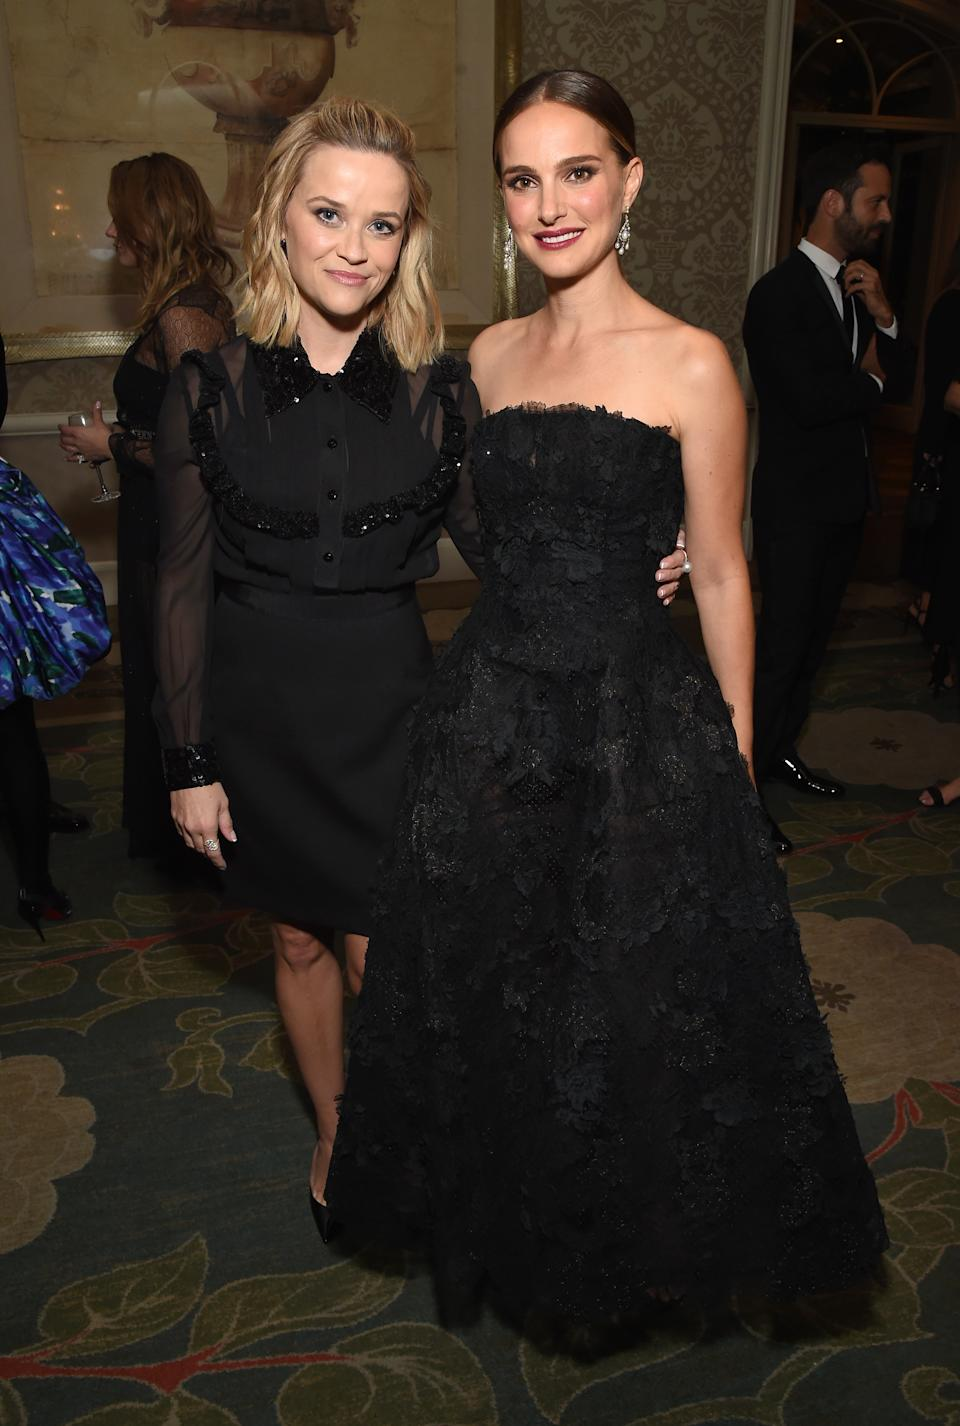 Reese Witherspoon wears a LBD while Natalie Portman wows in a strapless, black ballgown by Dior. <em>[Photo: Getty]</em>